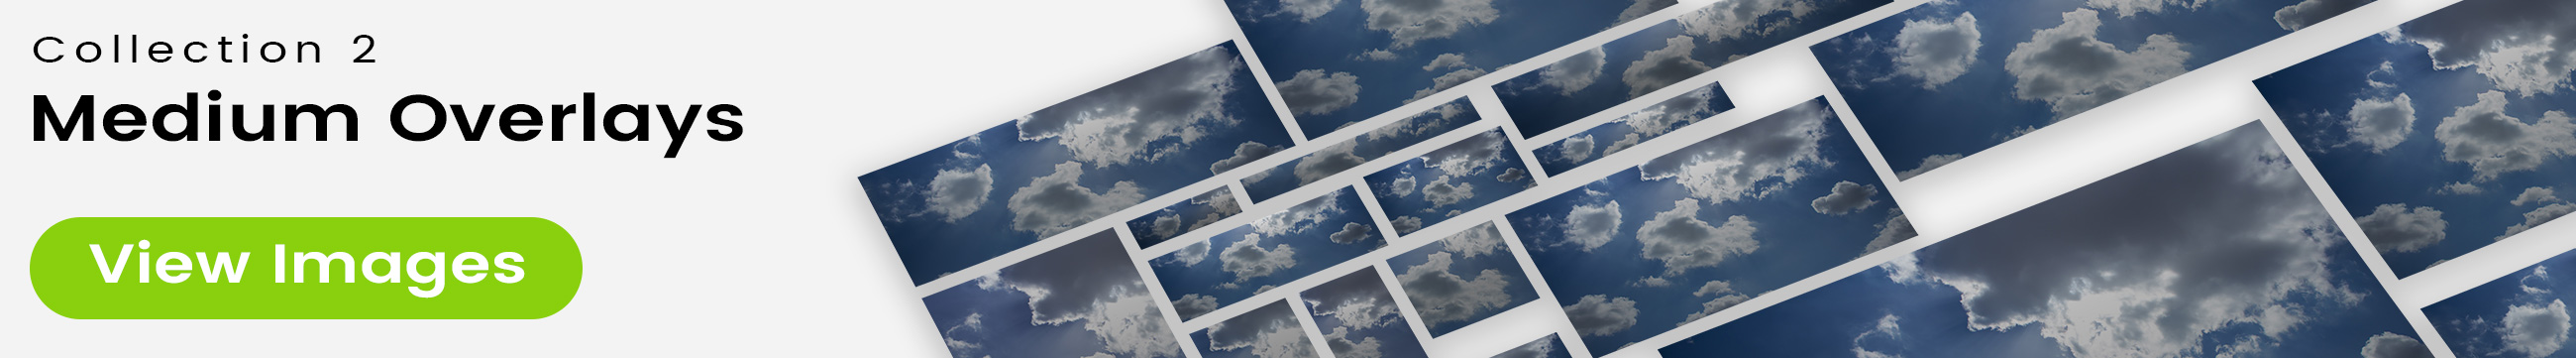 See 25 bonus images included with clouds stock image 9500. Collection 2 of 4 features a medium-dark overlay design.